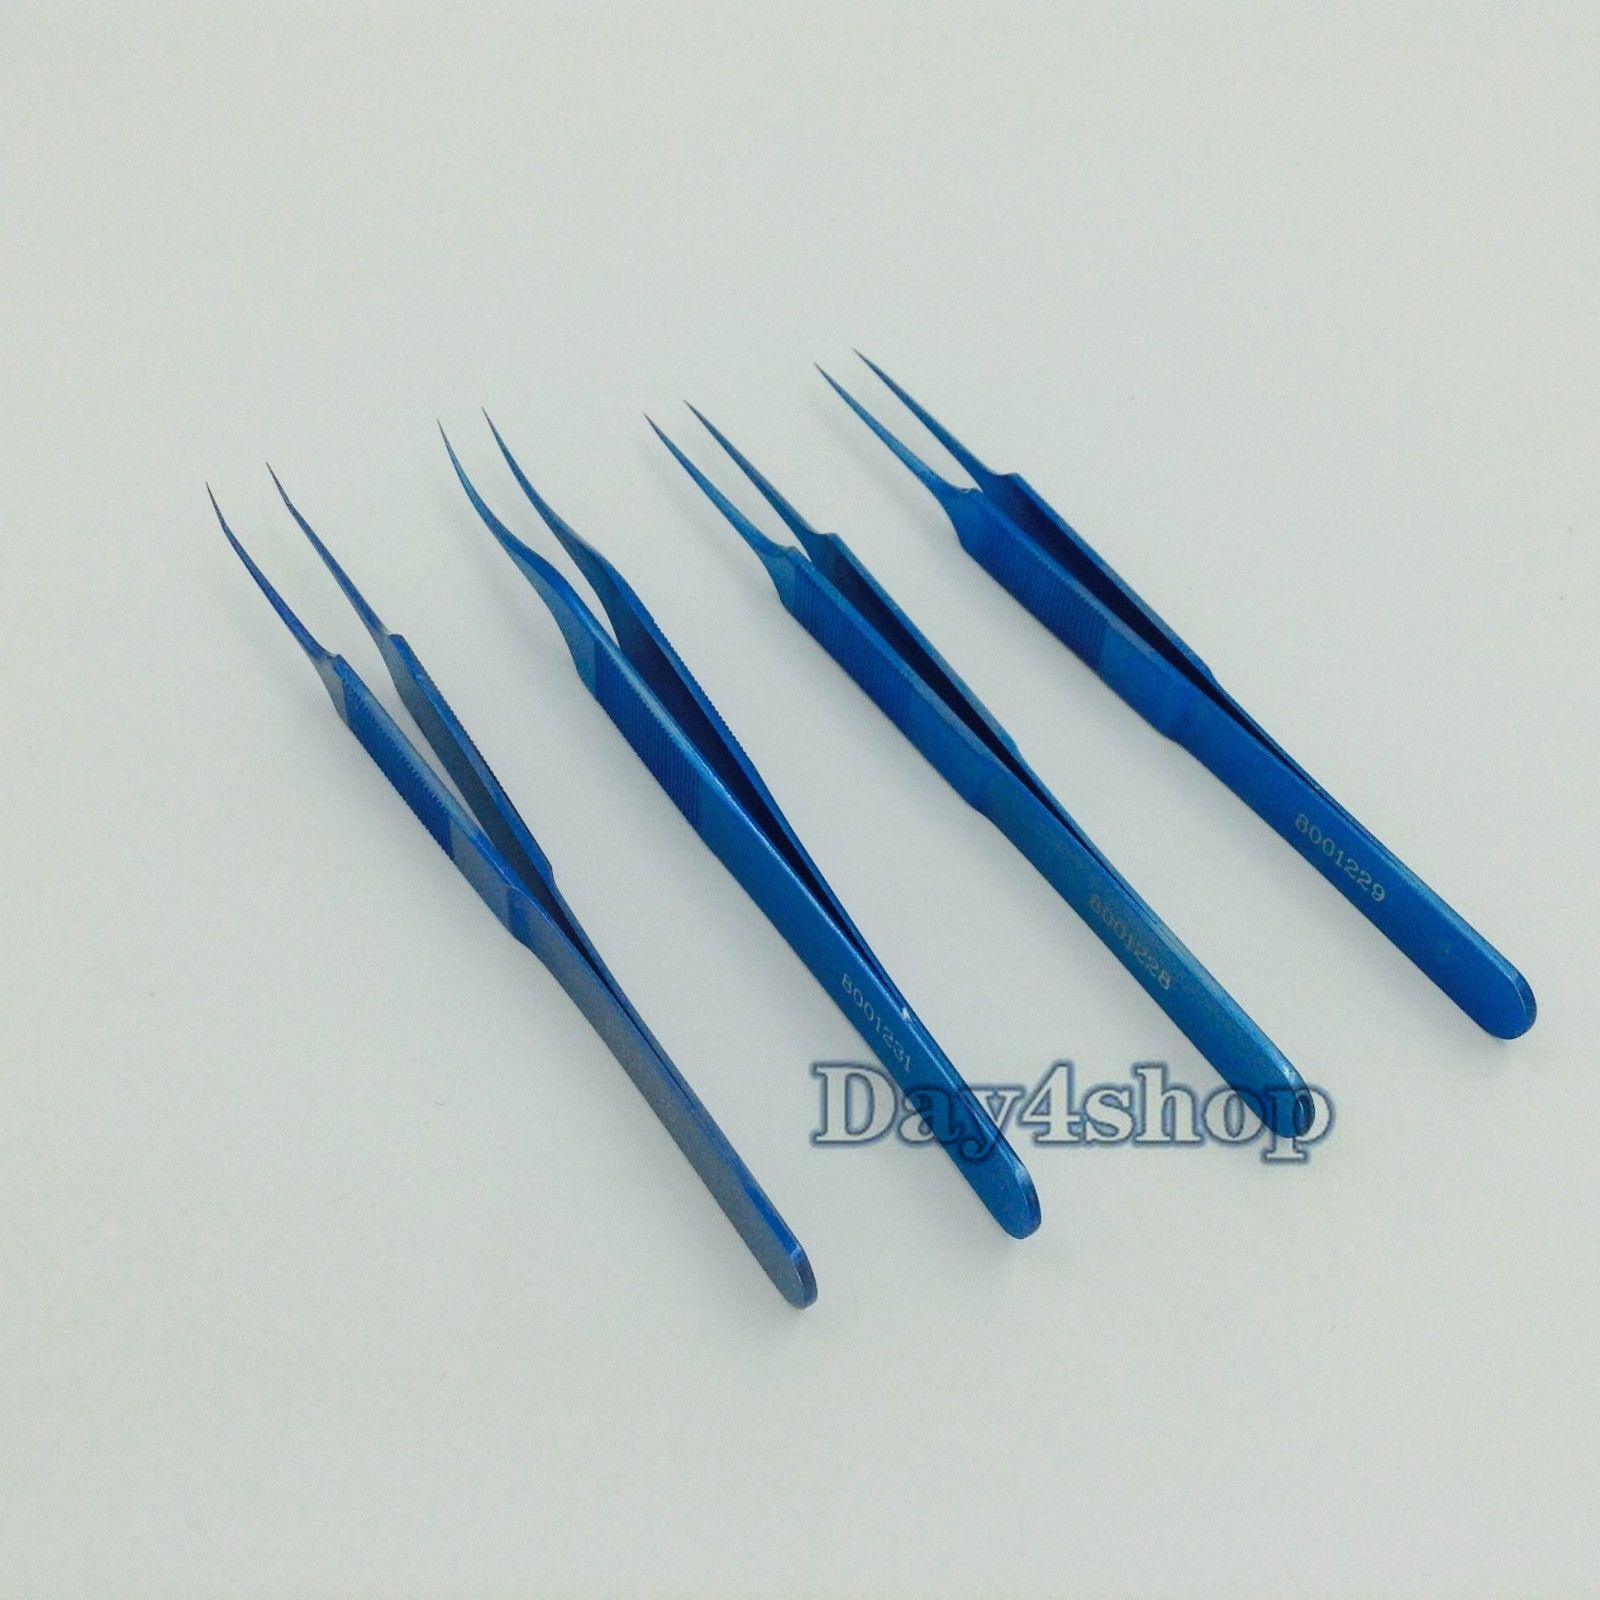 New 4pcs/set different Jeweler Style Forceps ophthamic surgical Dental instruments extracting forceps 15 dental surgical instruments